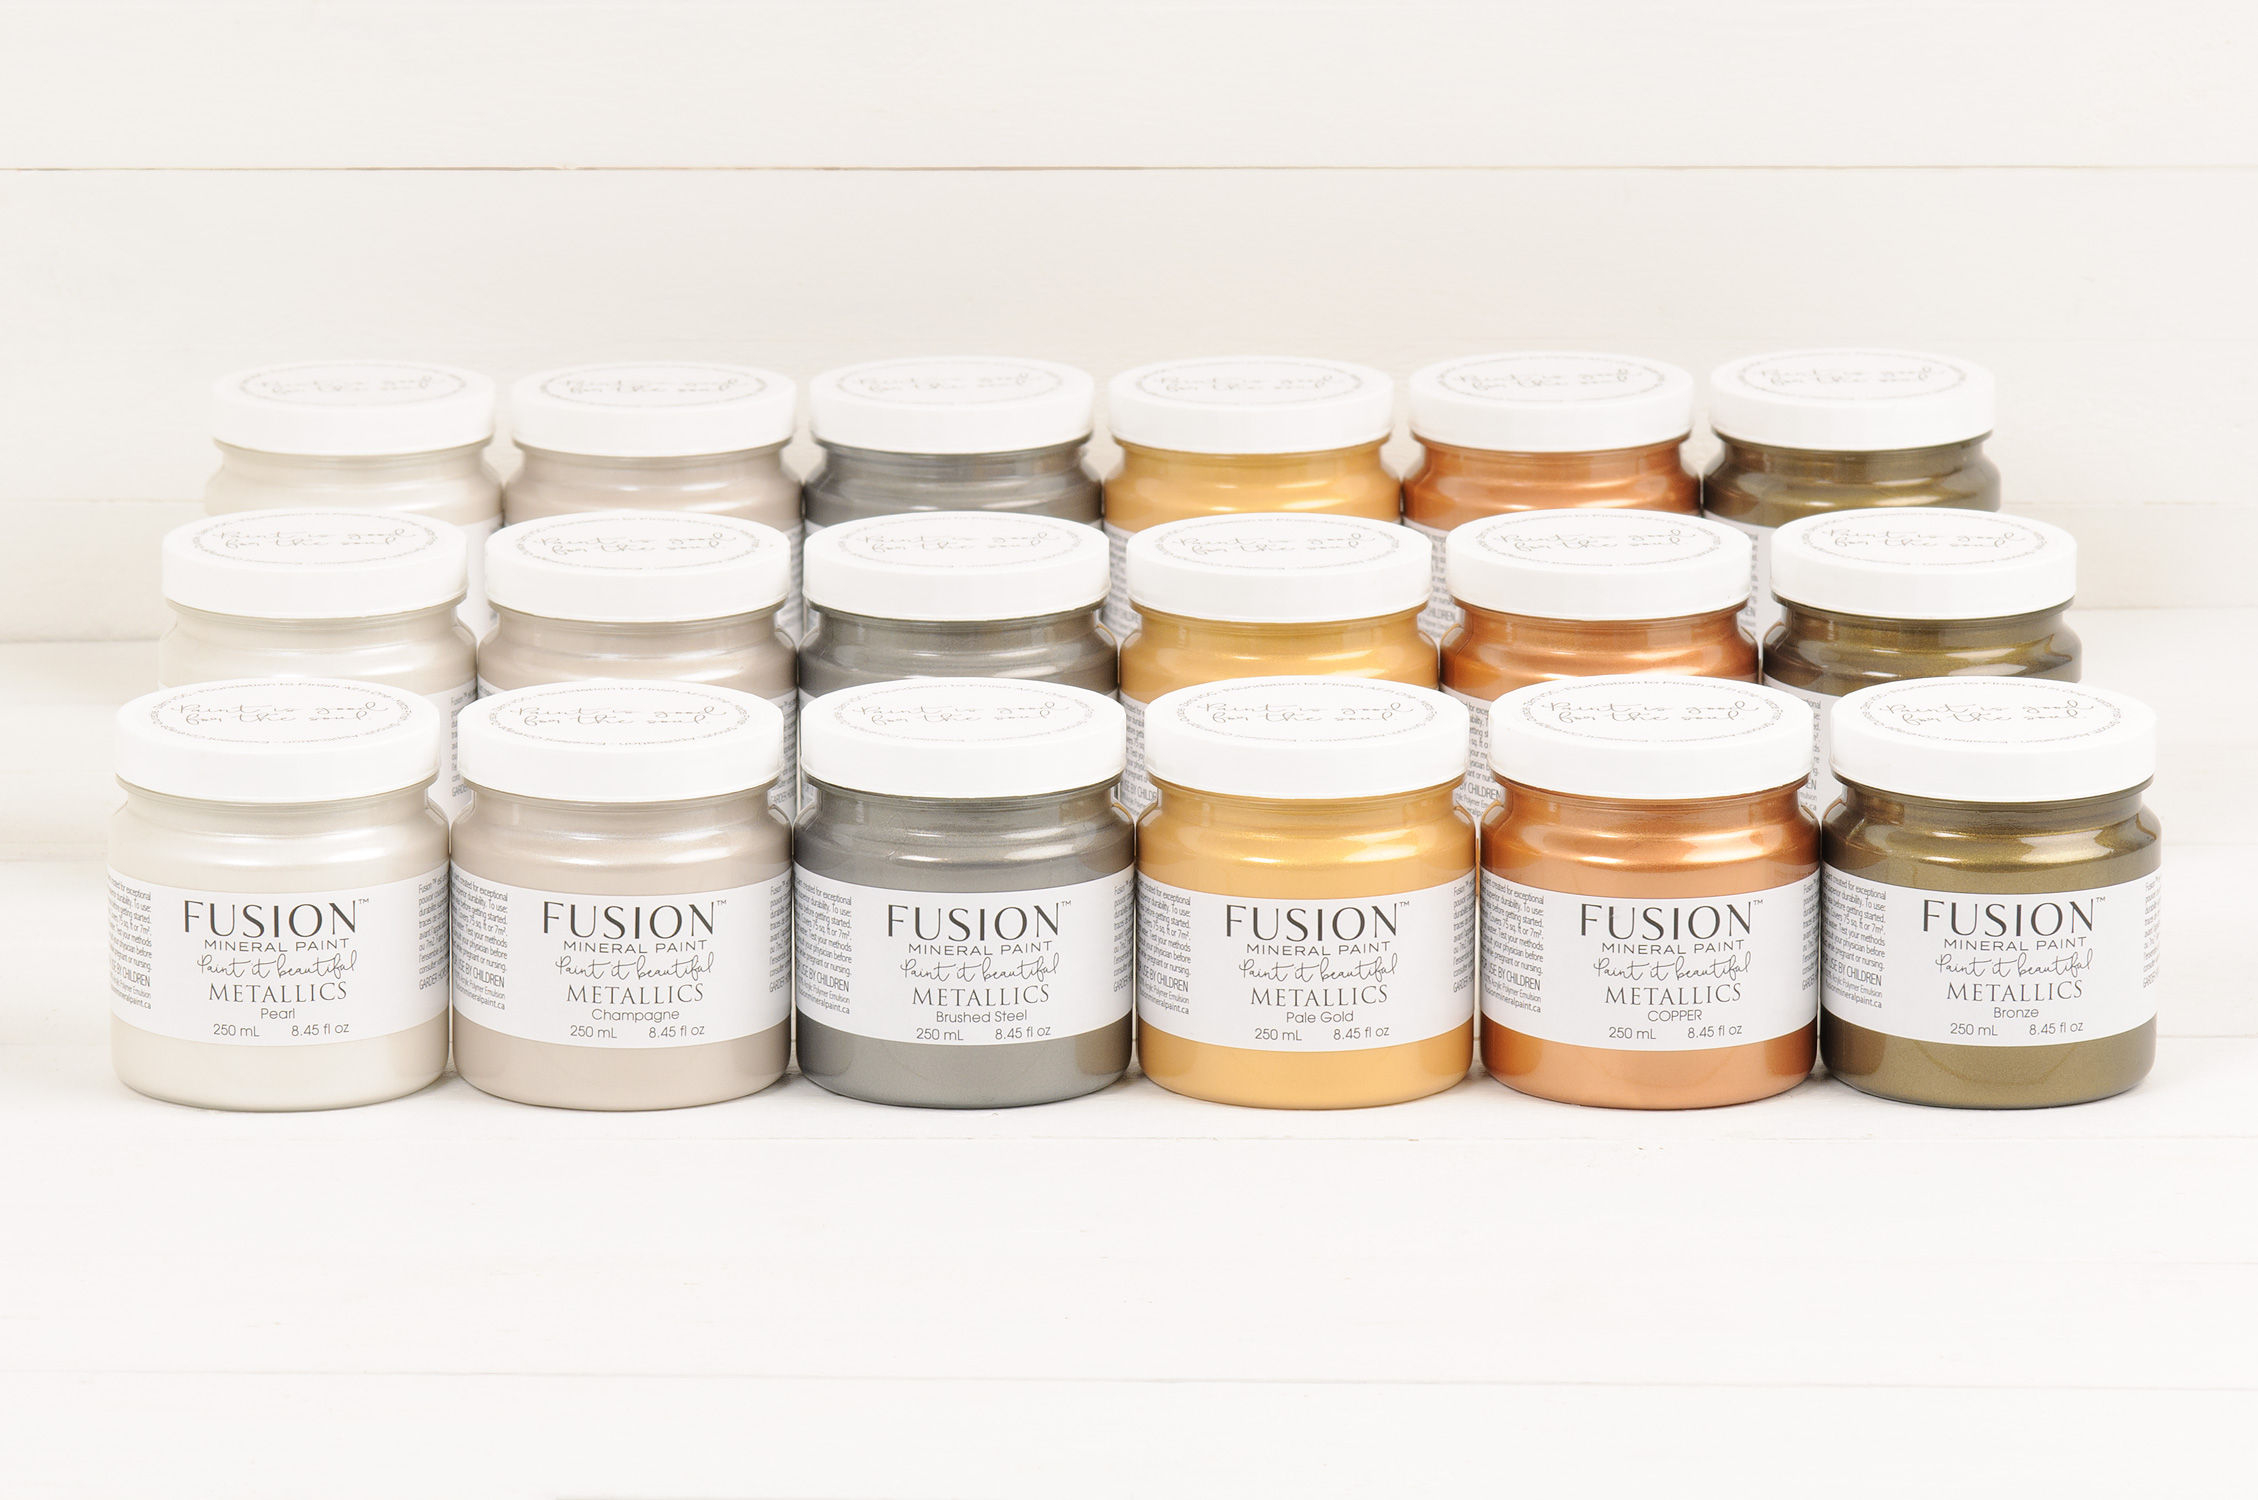 Metallics Fusion Mineral Paint